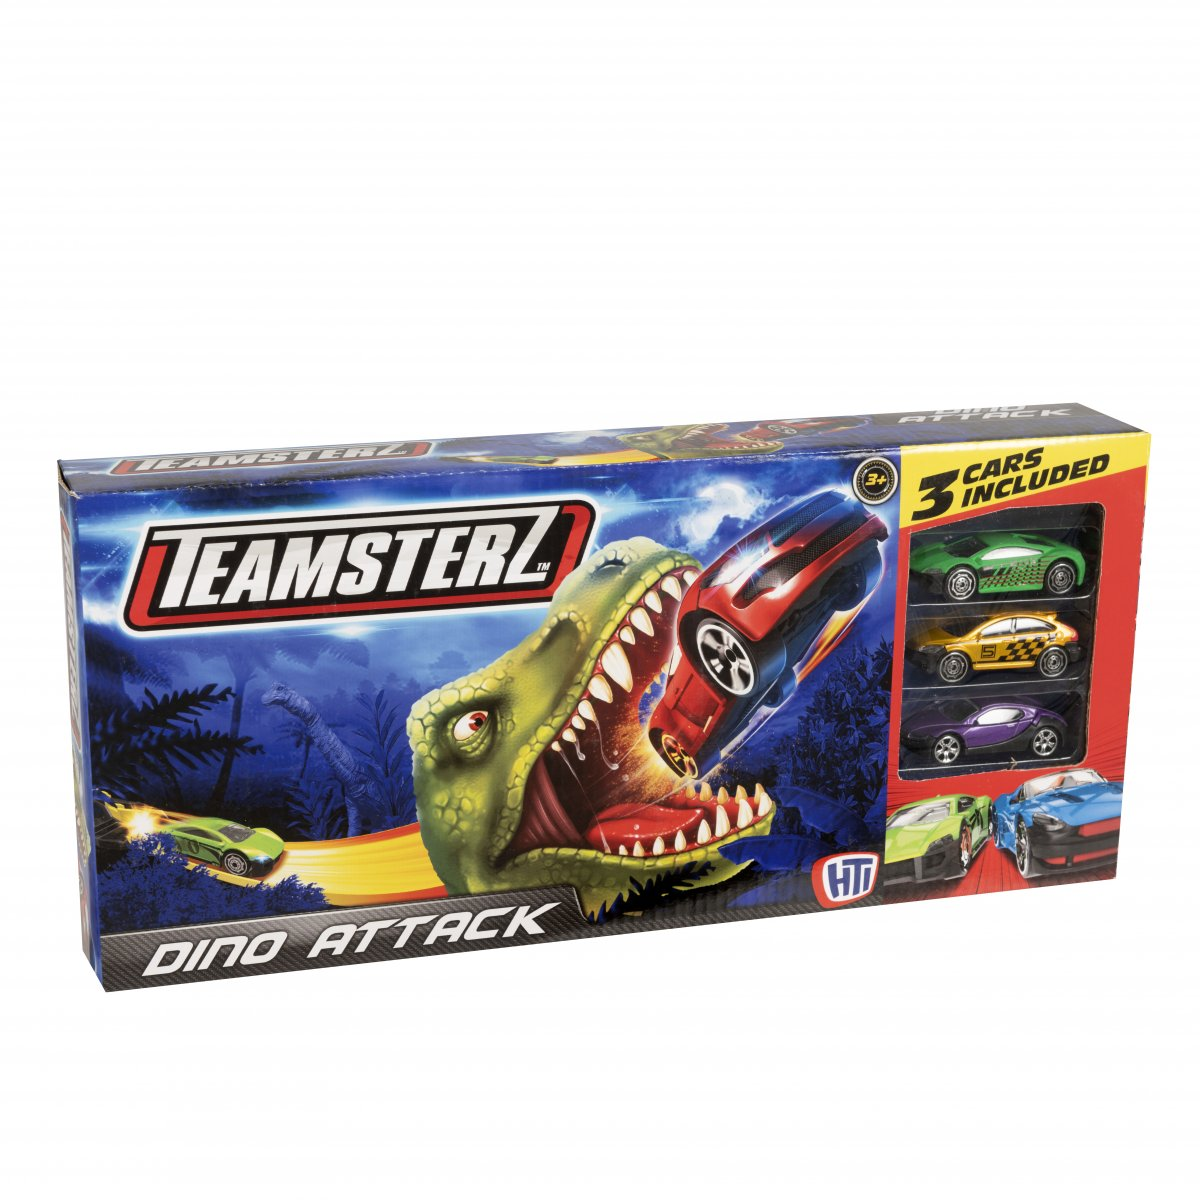 Dino Attack Track Set with 3 cars